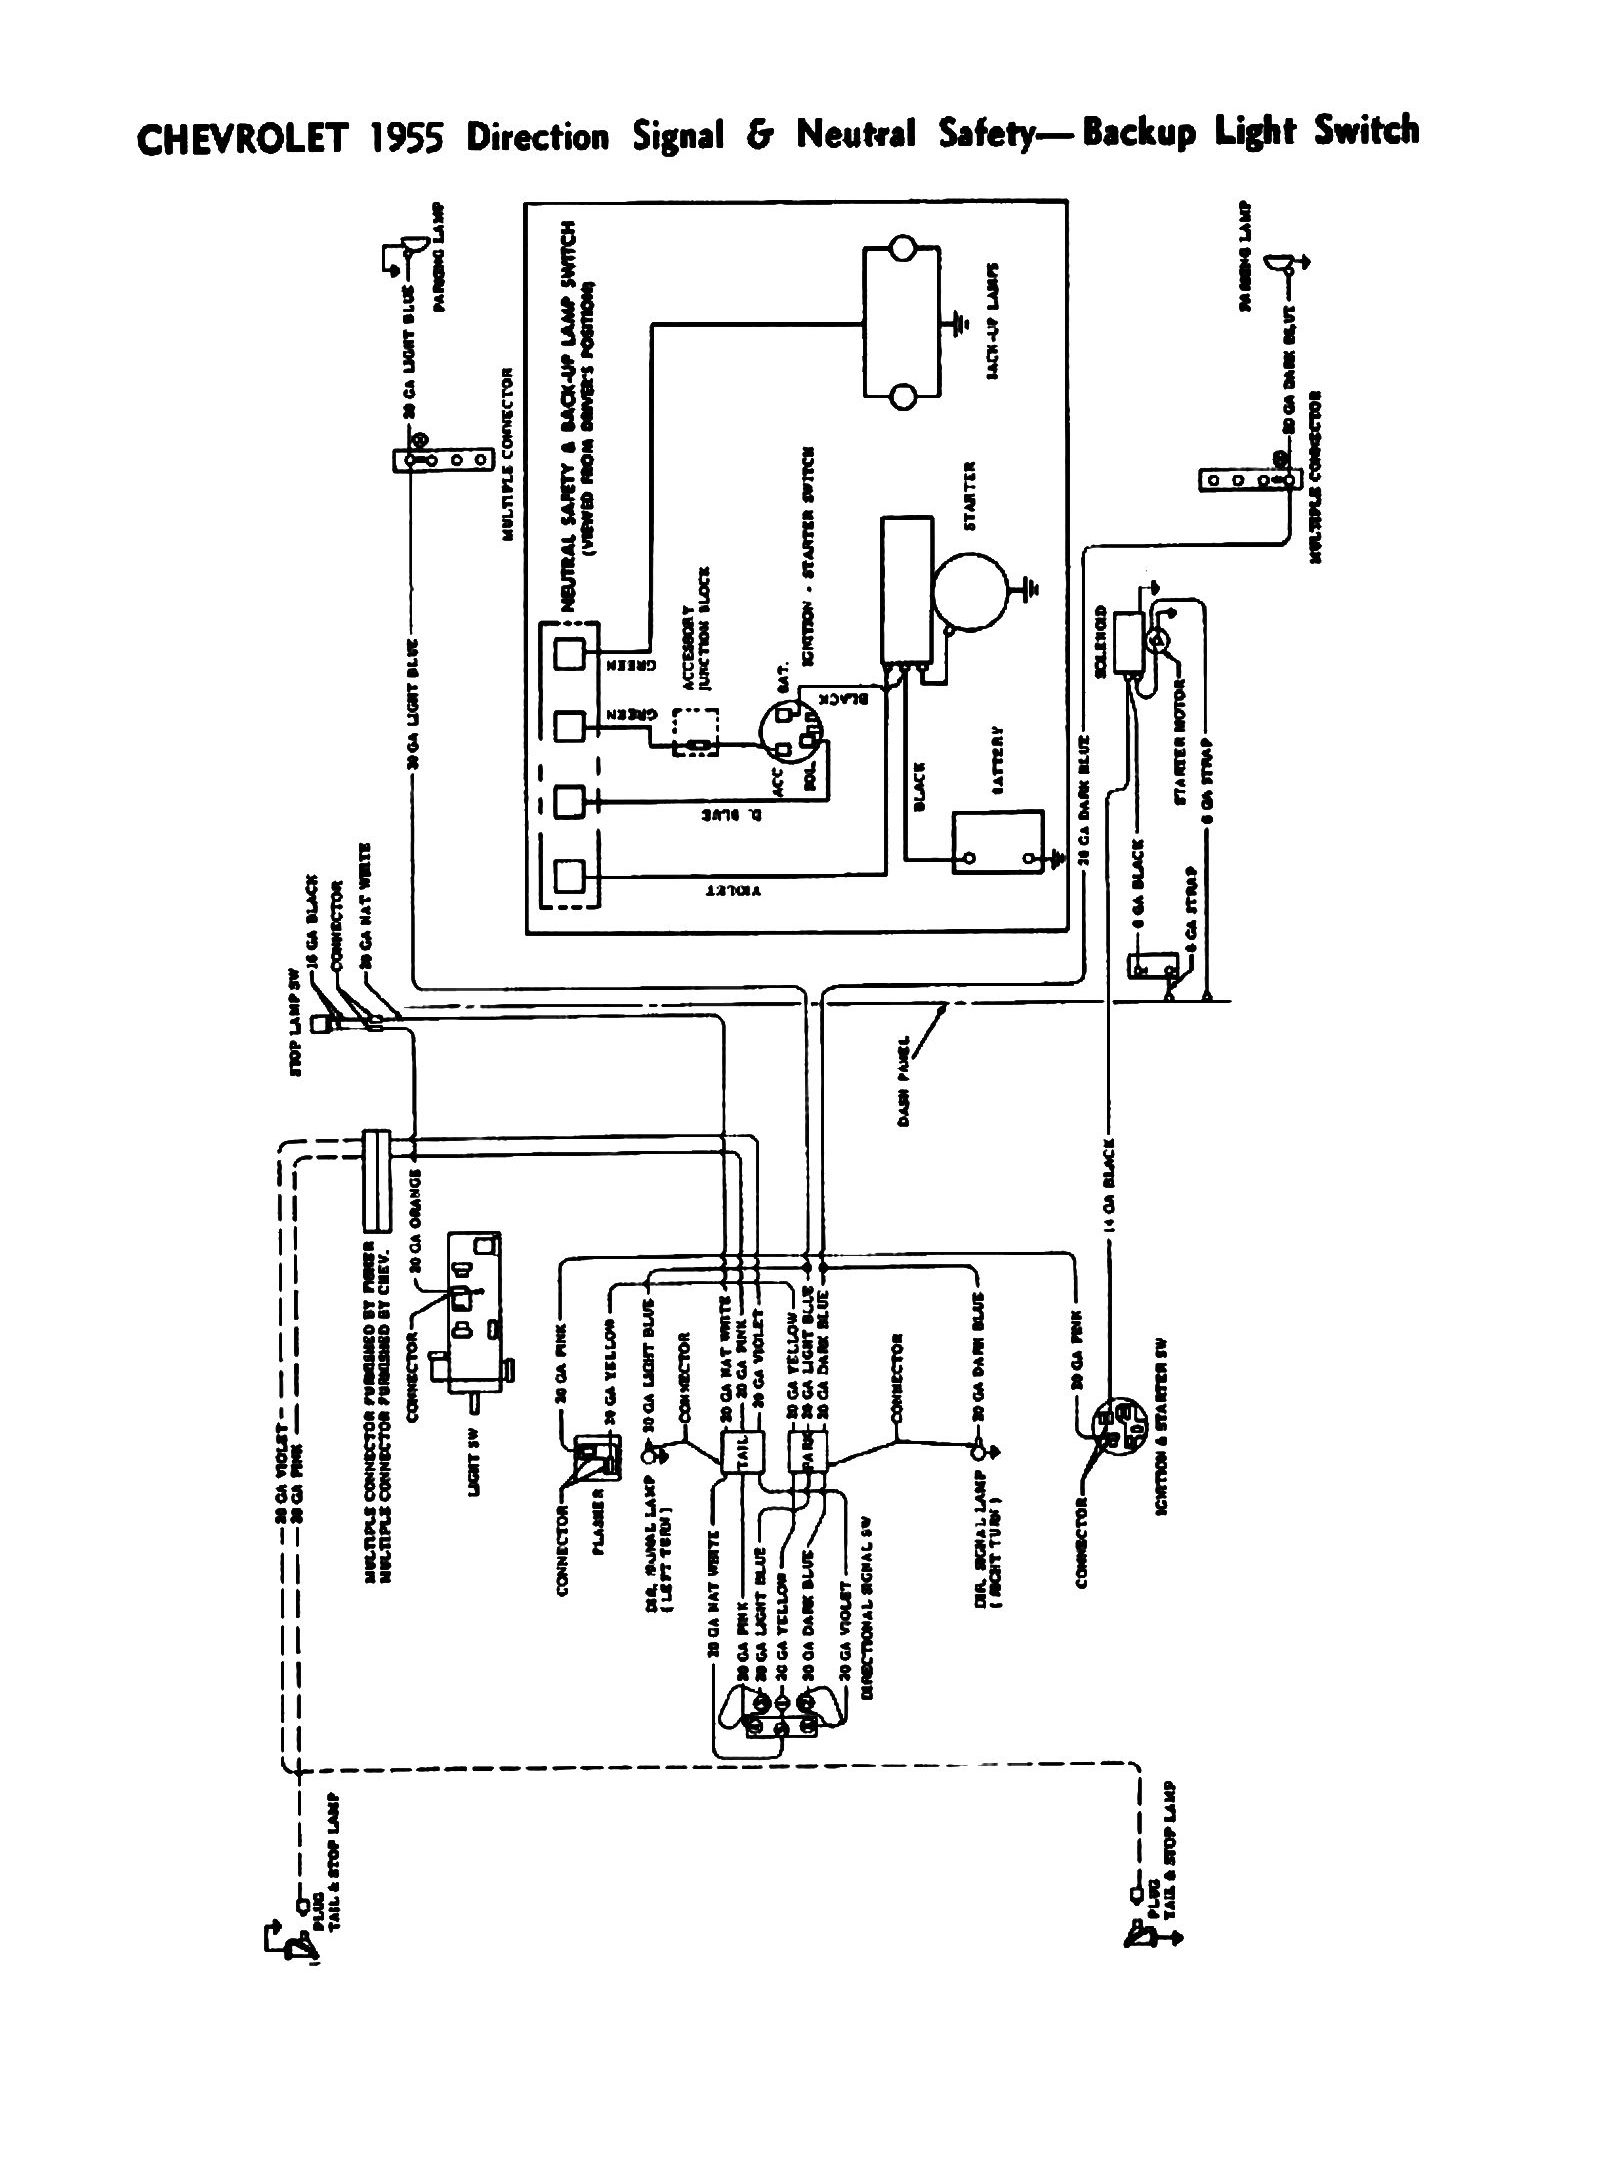 2001 Chevy Impala Turn Signal Wiring Diagram Library S10 1955 Directional Signals Neutral Safety Backup Switches